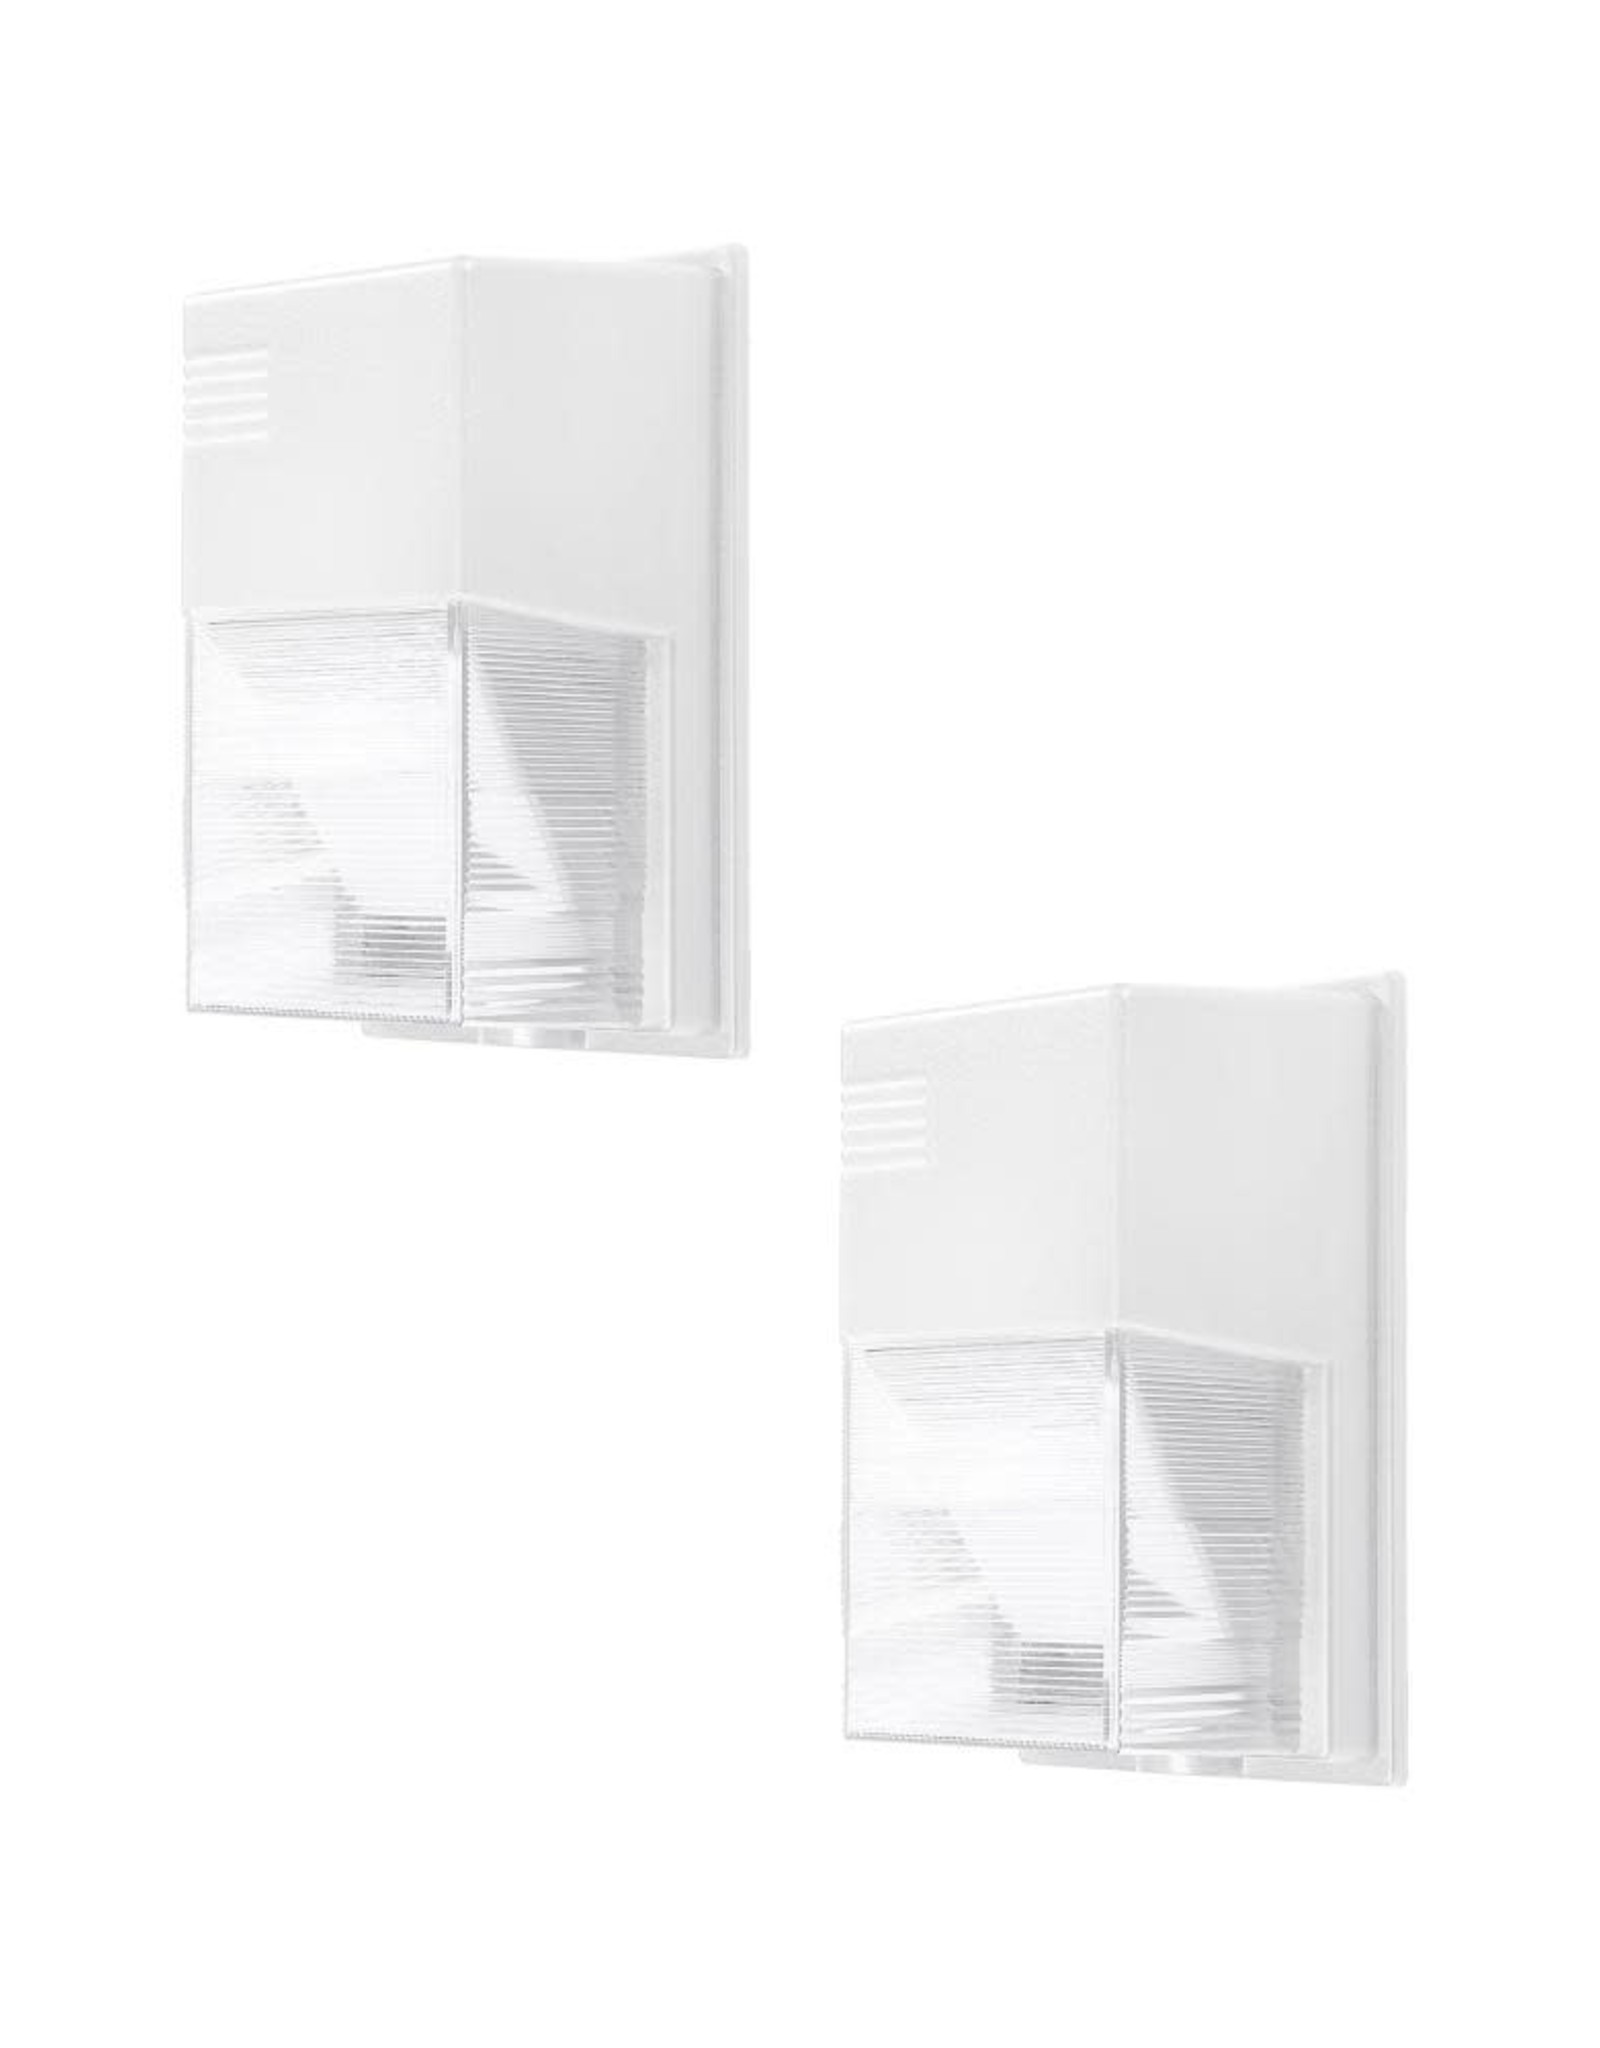 PROBRITE 150-Watt Equivalent White Integrated Outdoor LED Wall Pack, 2500 Lumens, Dusk to Dawn Outdoor Security Light